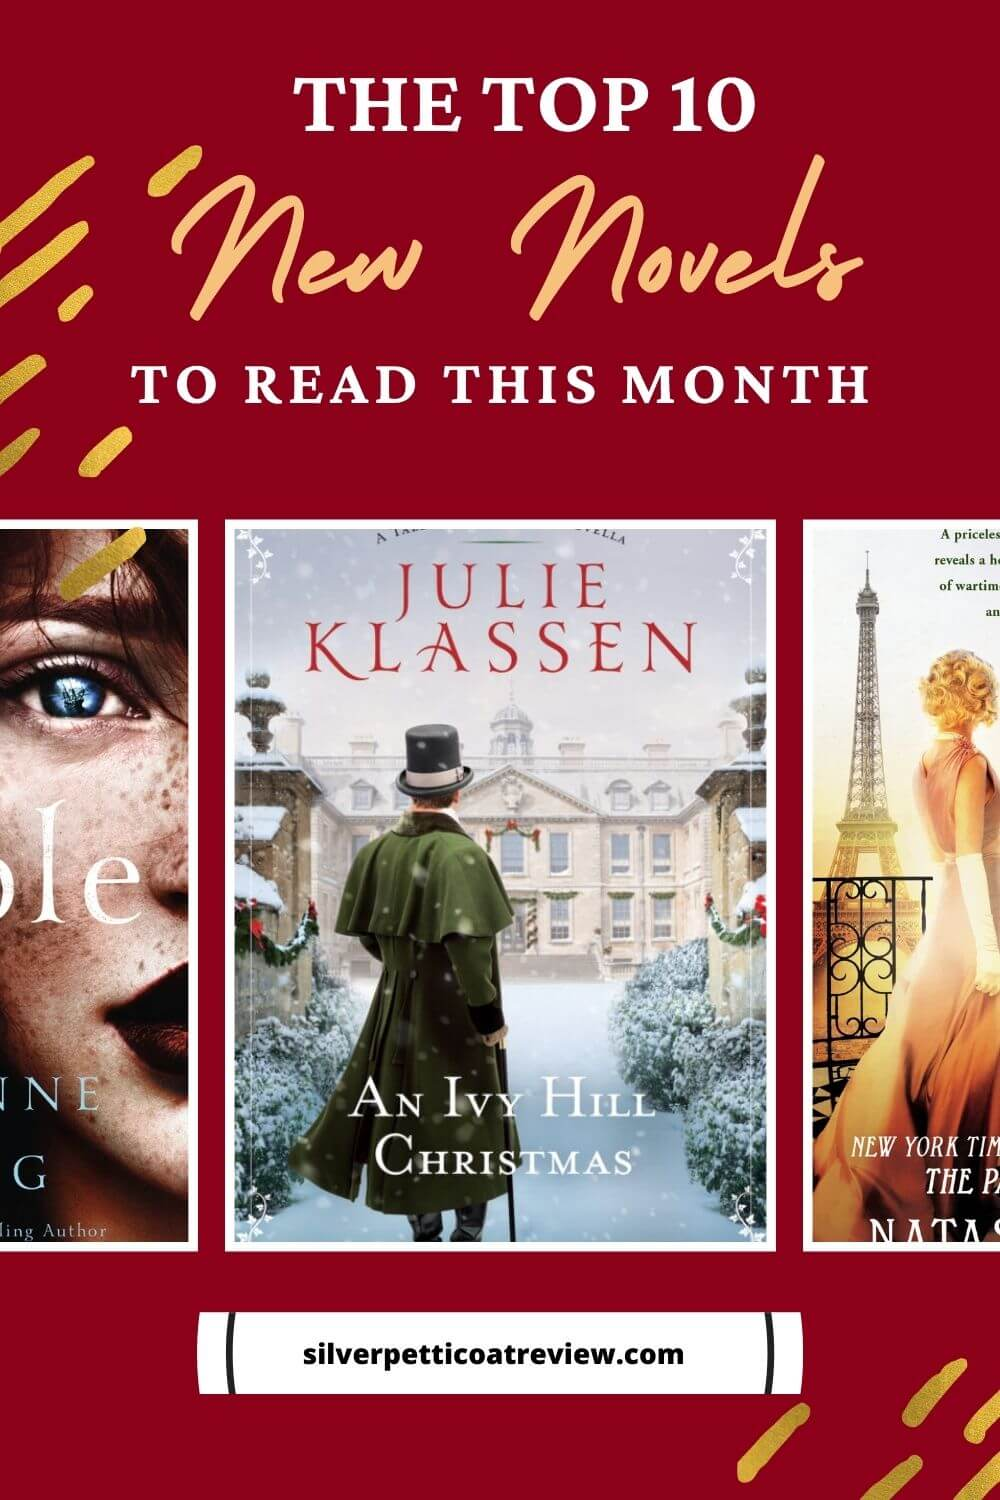 The Top Ten New Novels To Read This Month Pinterest Image